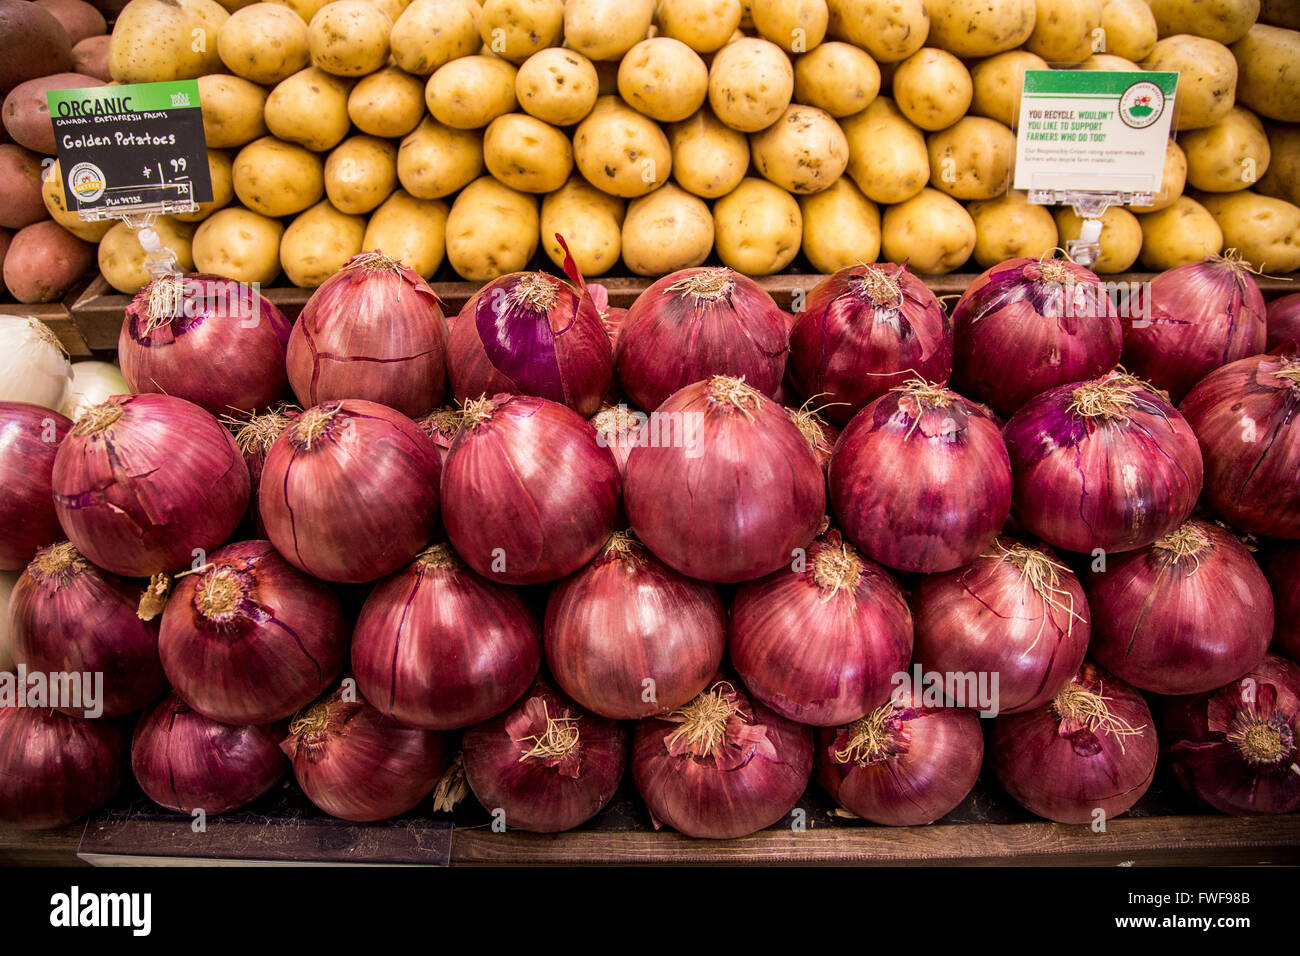 A Display Of Organic Potatoes And Red Onions In The Produce Section Of A  Grocery Store.